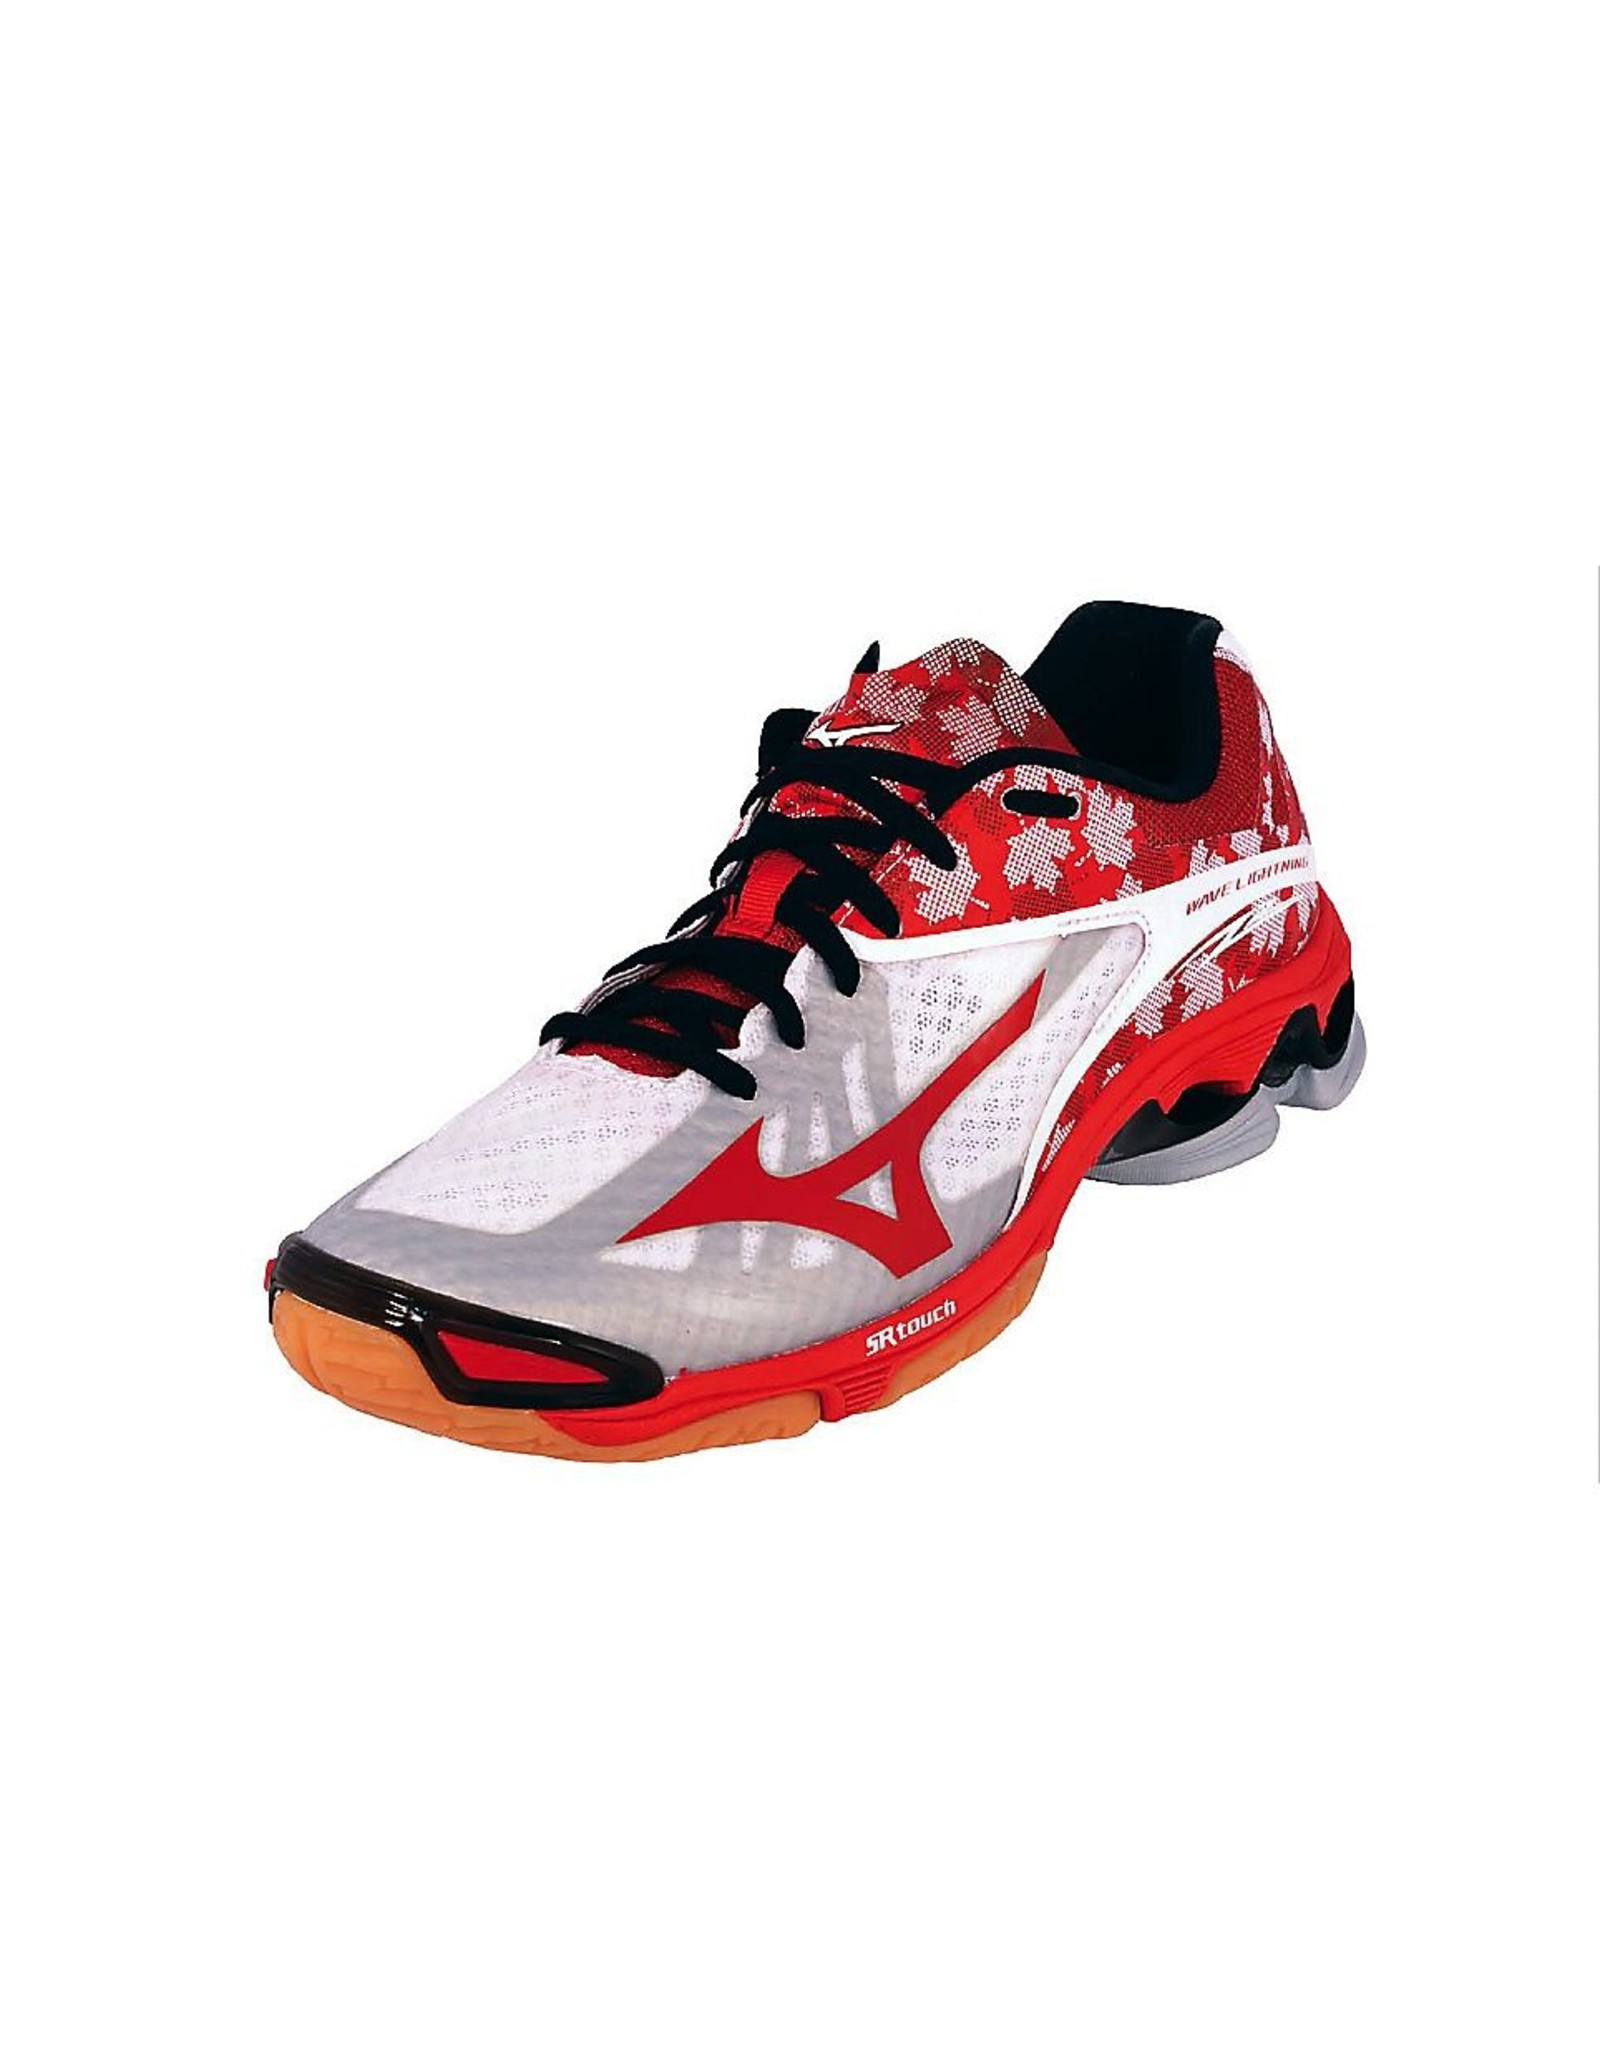 Mizuno The Wave Lightning Z2 is still offered in the same classic, low-cut. This lightweight shoe features the parallel wave plate that creates lateral stability- essential for quick lateral movements during court play. Ideal for use during both practices and ga